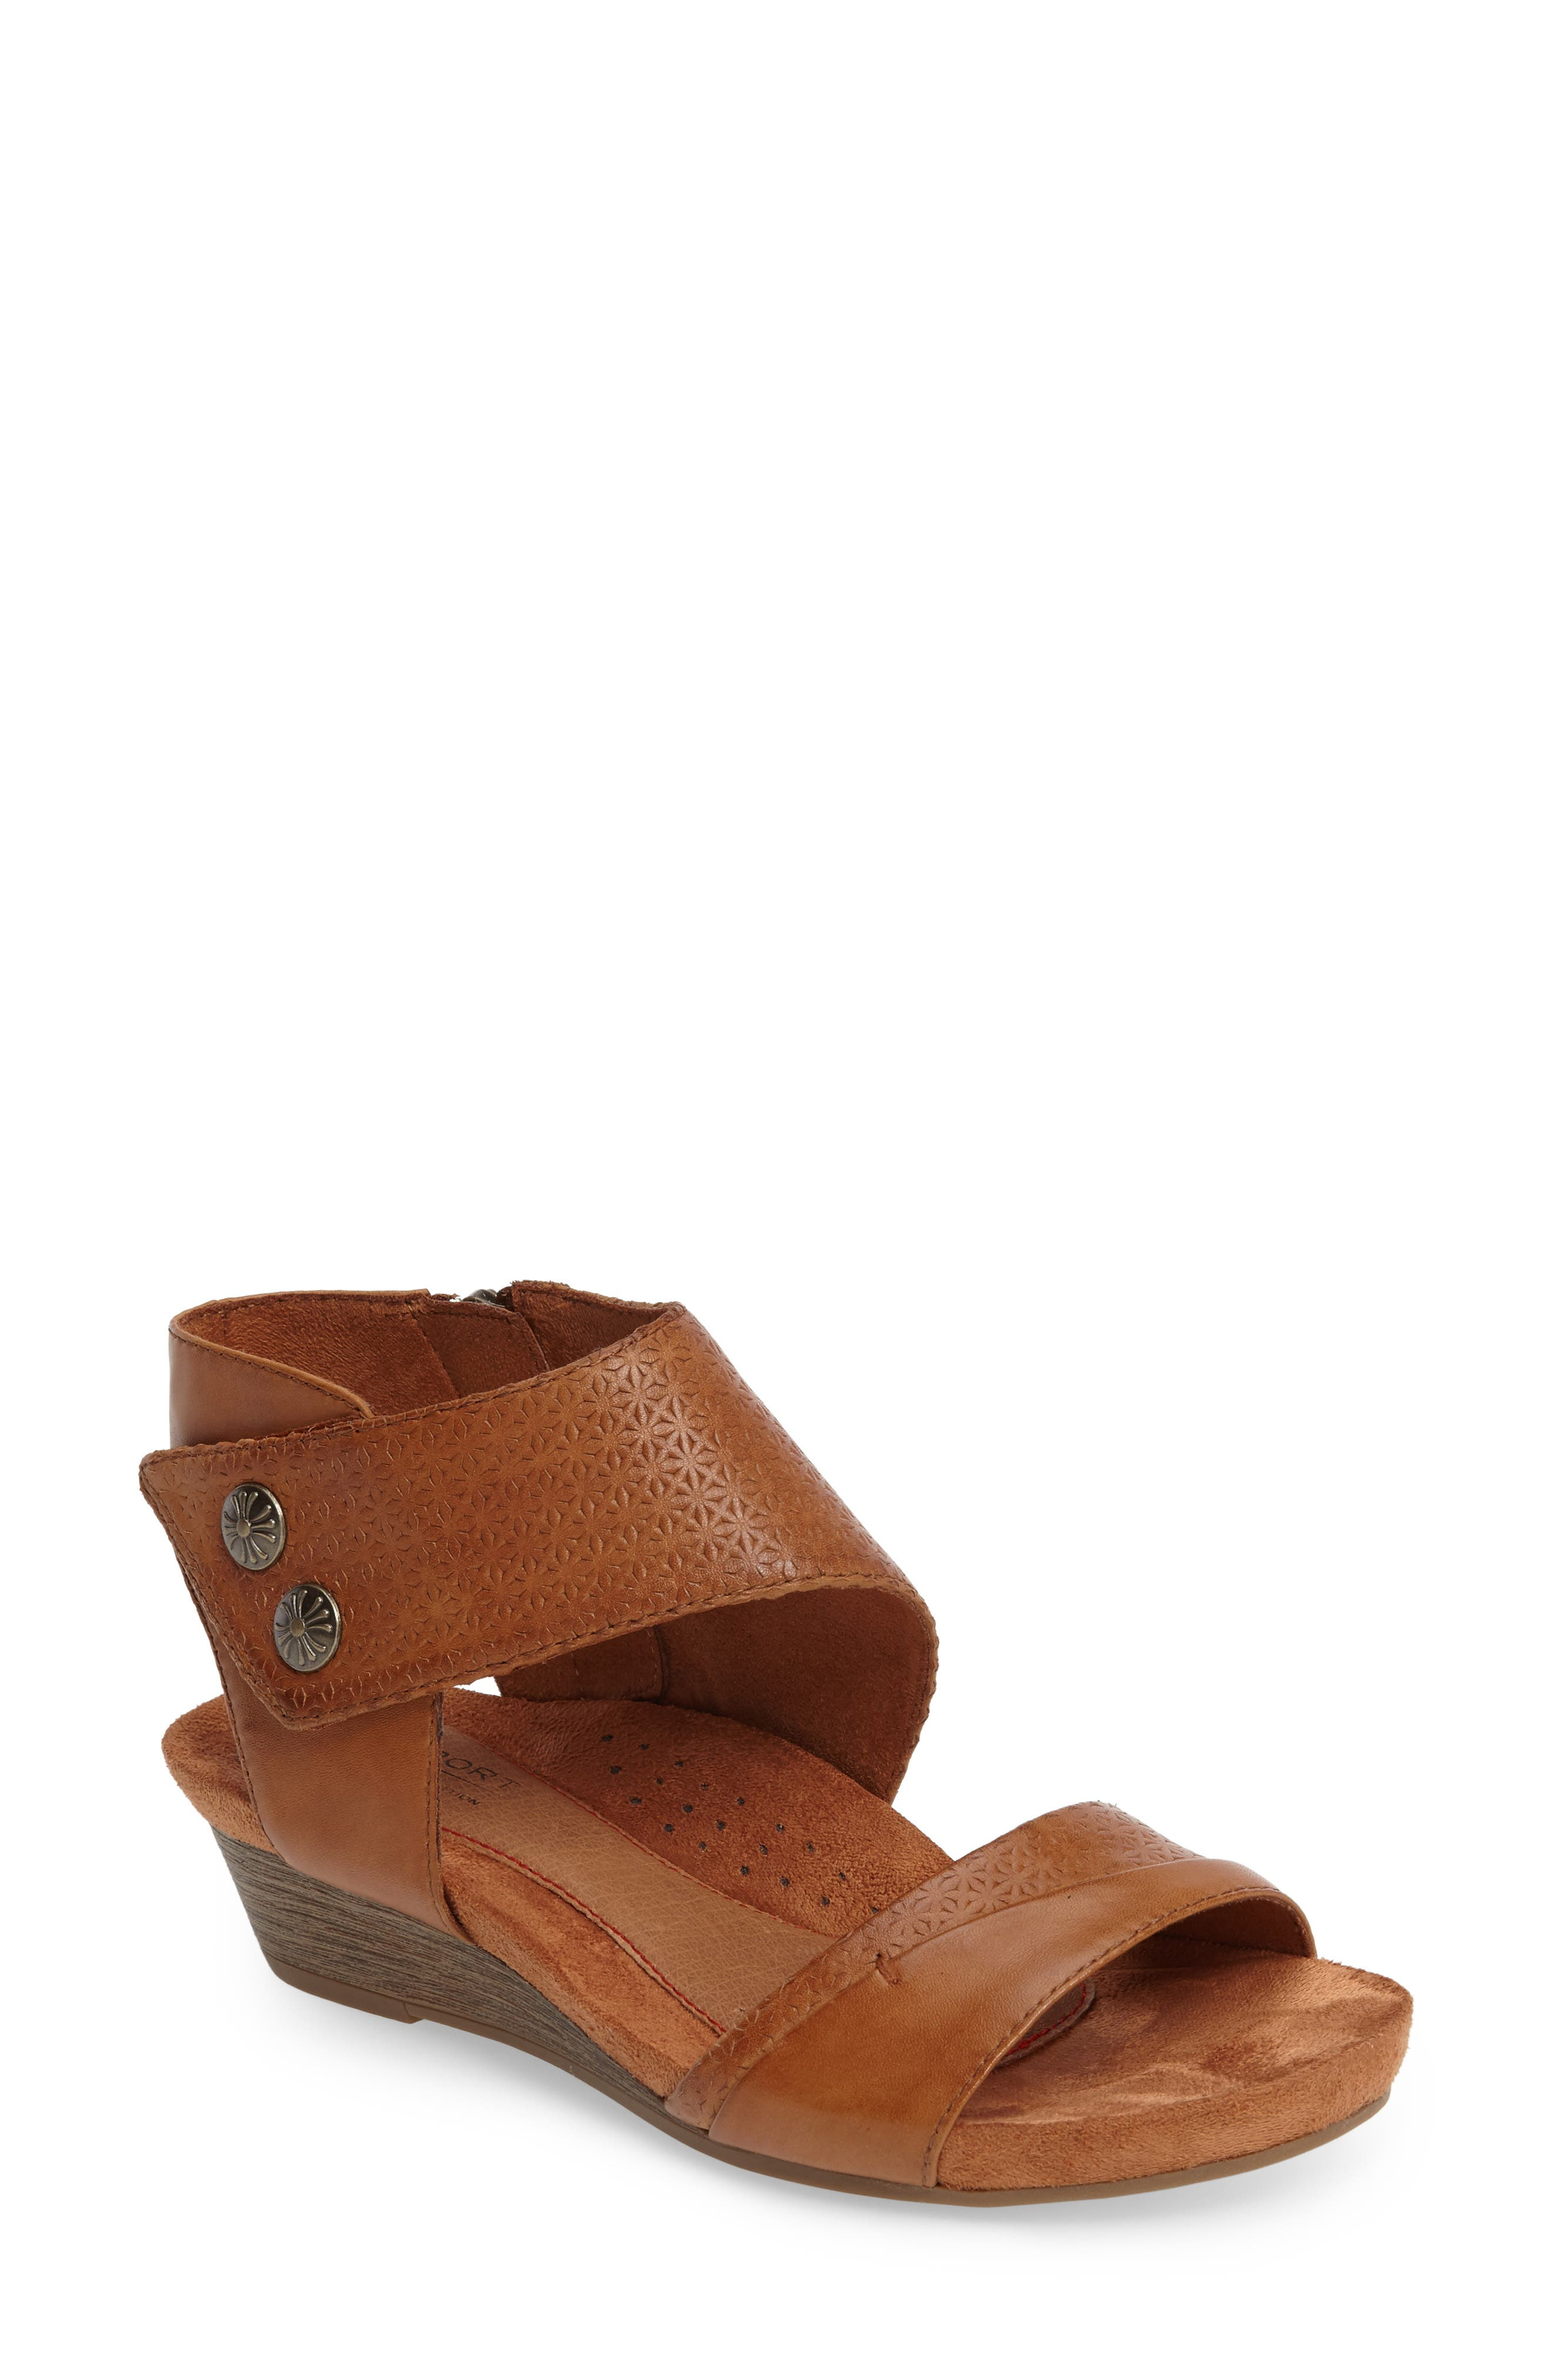 Hollywood Sandal,                             Main thumbnail 1, color,                             TAN LEATHER